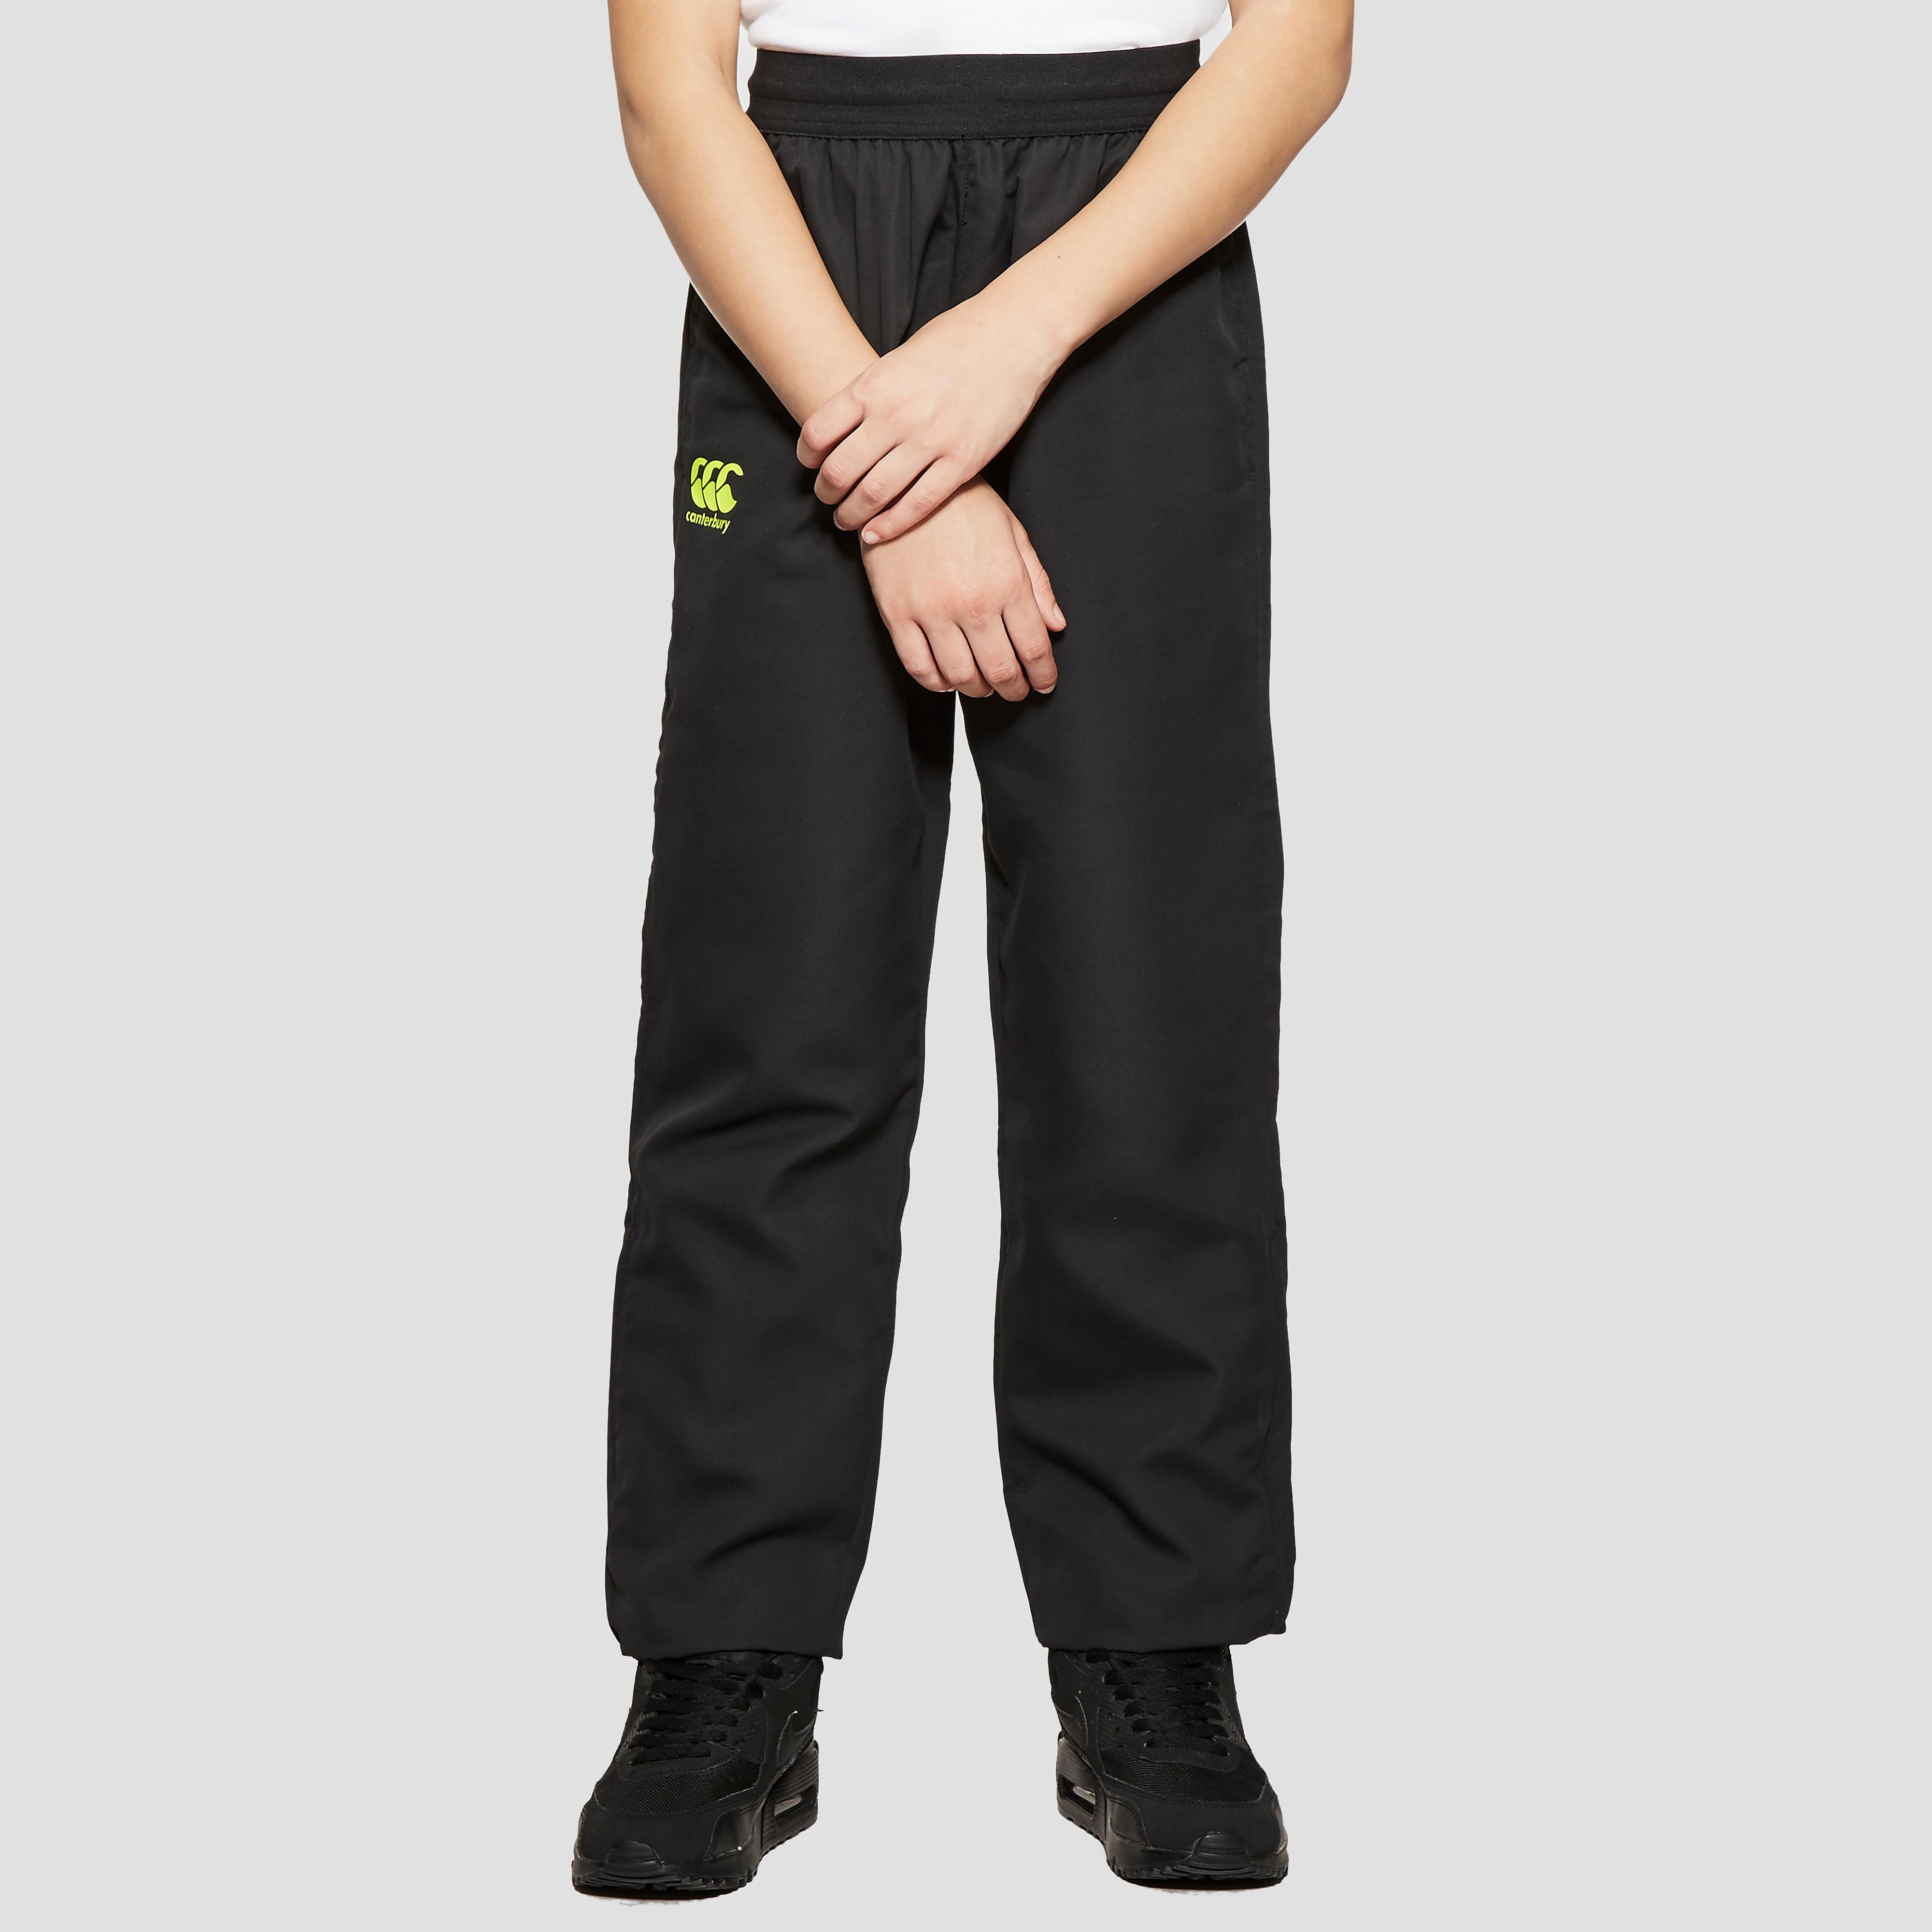 Canterbury Vaposhield Woven Junior Rugby Training Pants